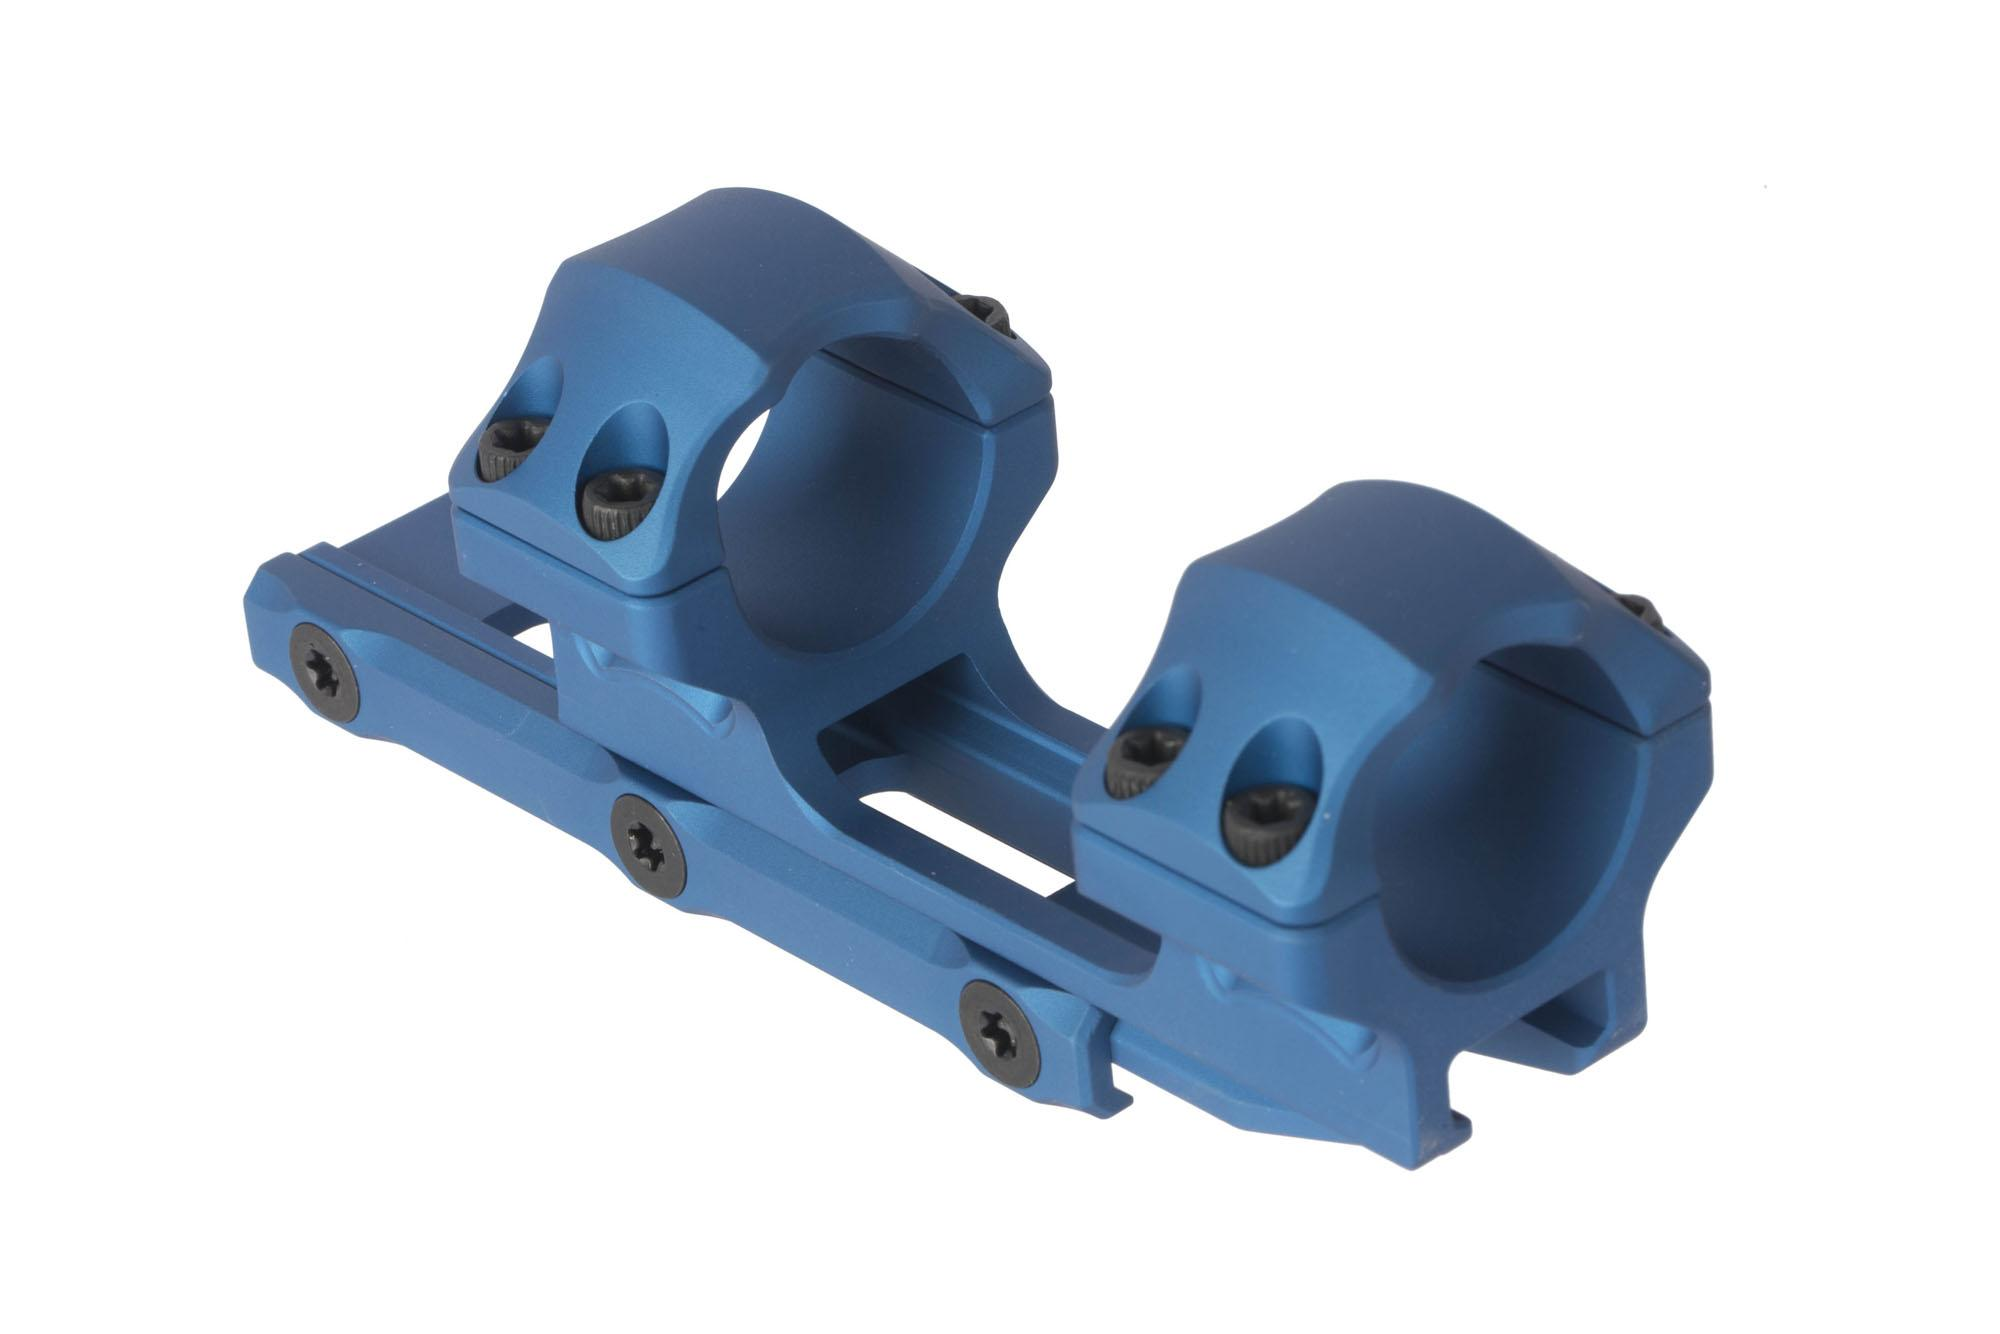 Leapers UTG ACCU-SYNC blue medium height scope mount pushes 1in rifle scopes forward 34mm for proper eye relief